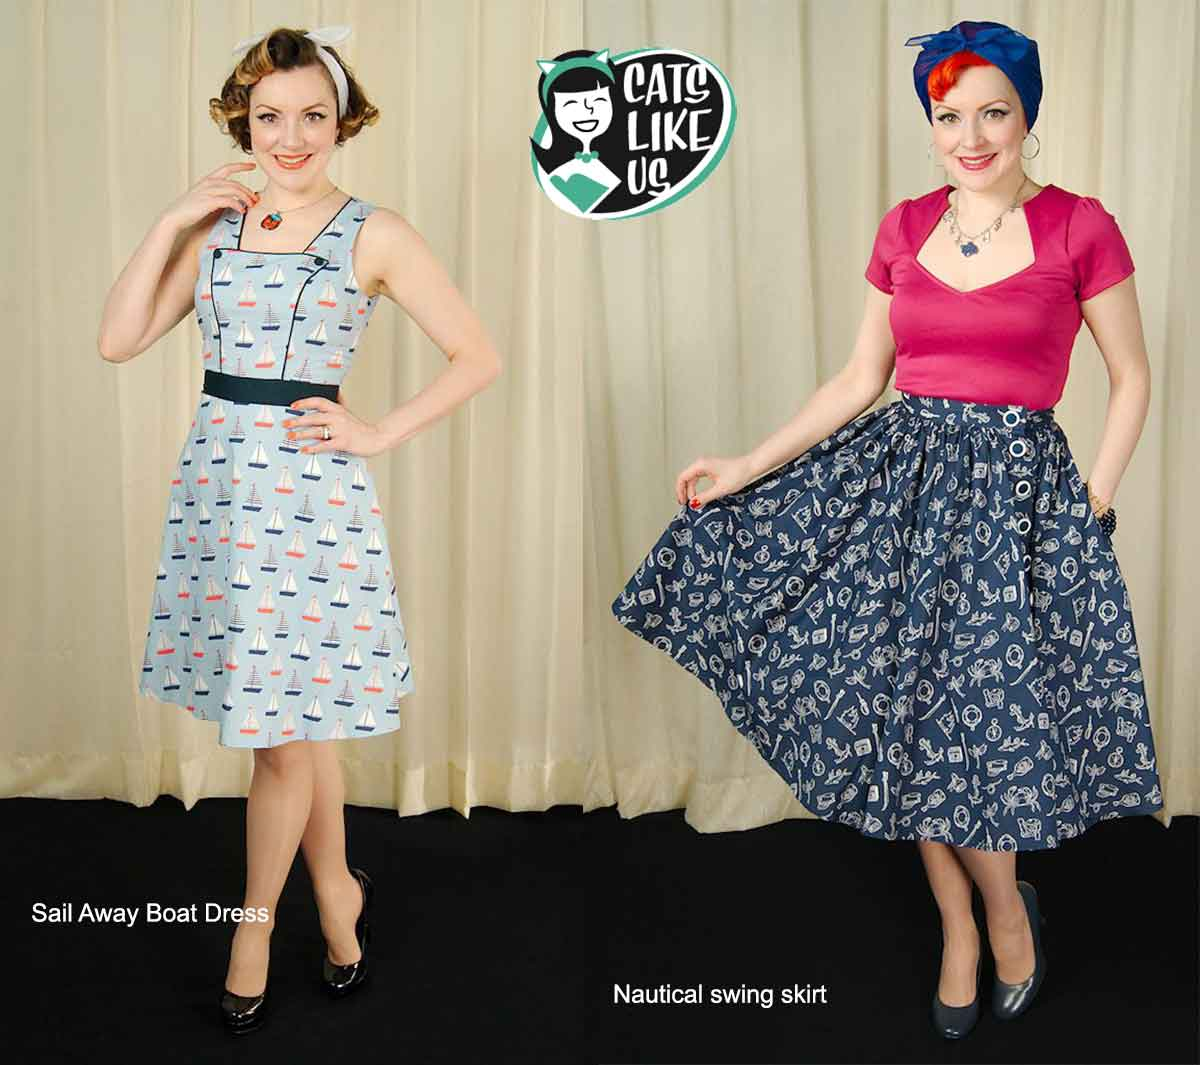 Cats-like-us---vintage-summer-style---nautical-swing-skirts-and-dresses